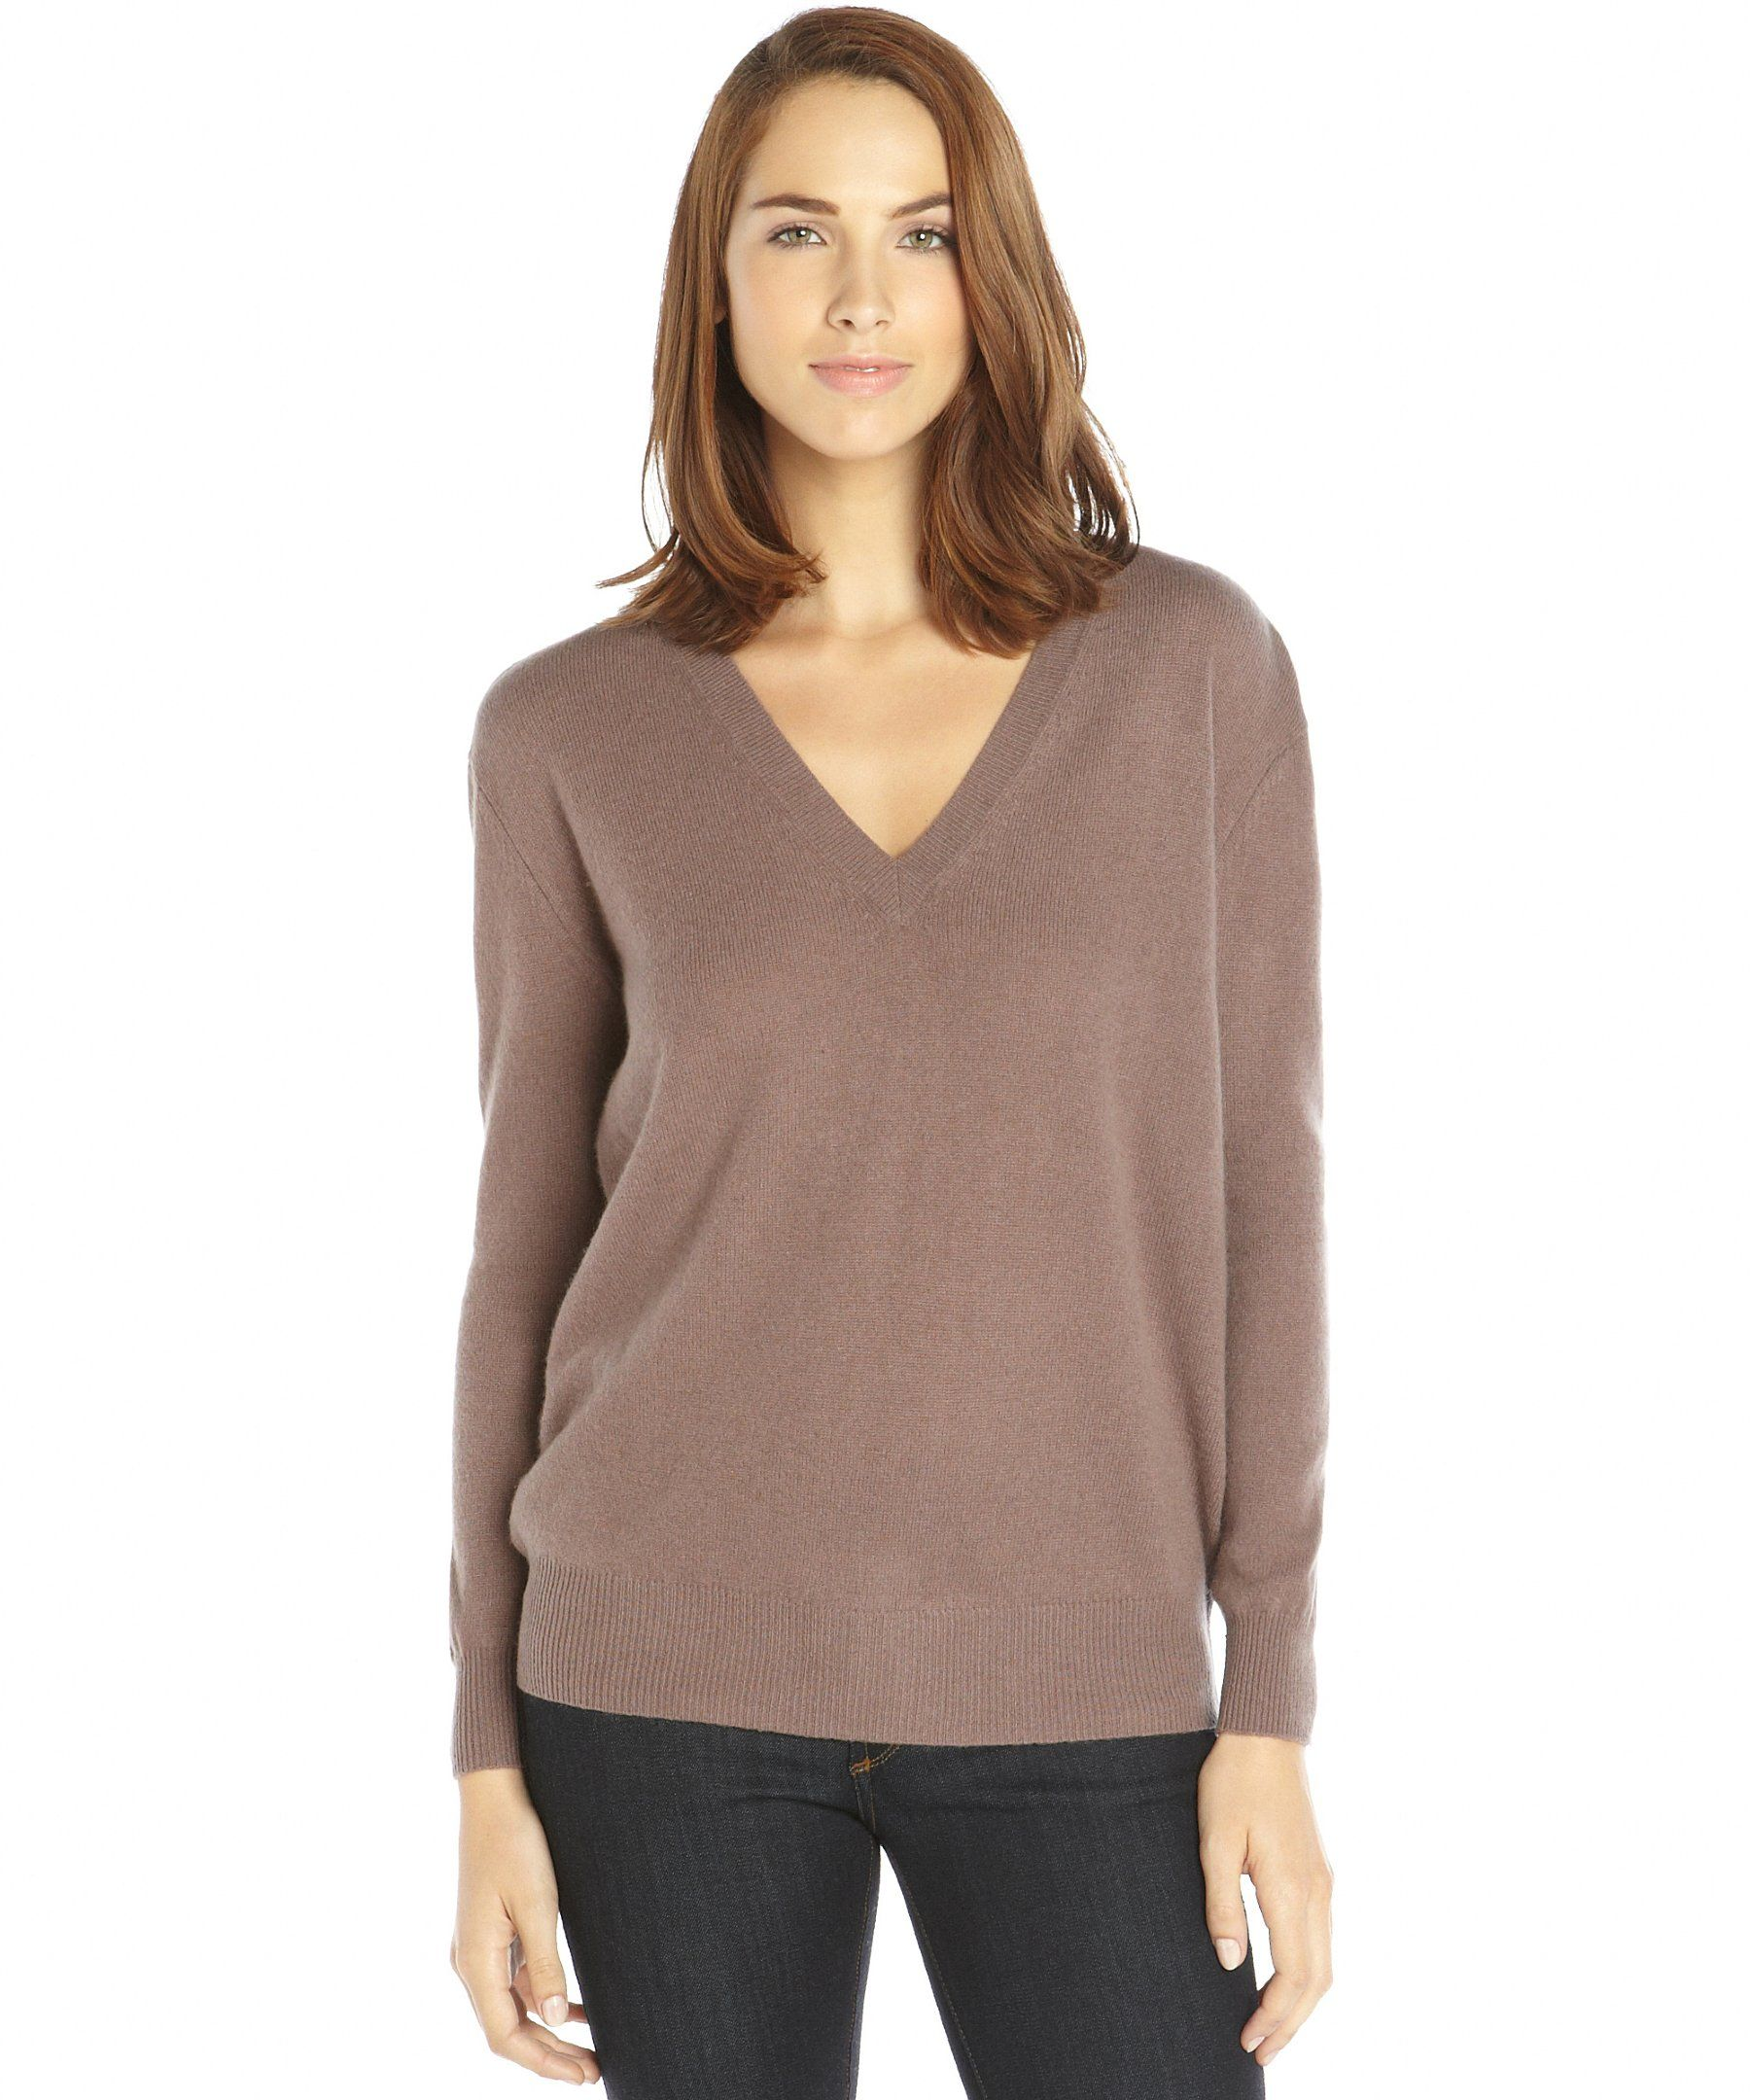 Autumn Cashmere soba brown v-neck boyfriend cashmere sweater ...